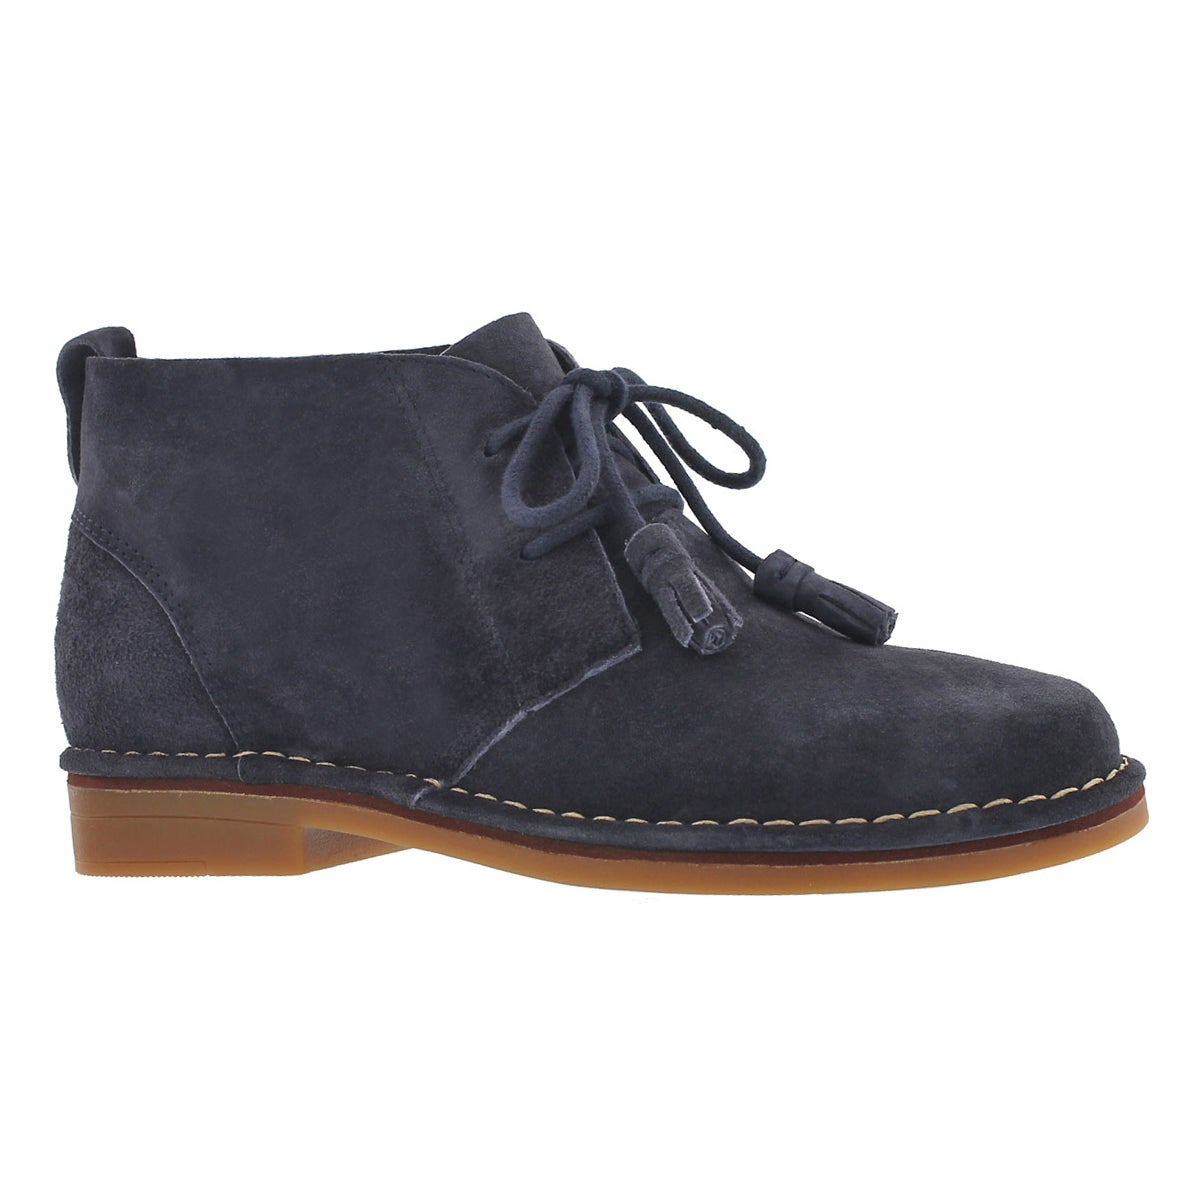 aea590a5110 Women's CYRA CATELYN navy chukka boots